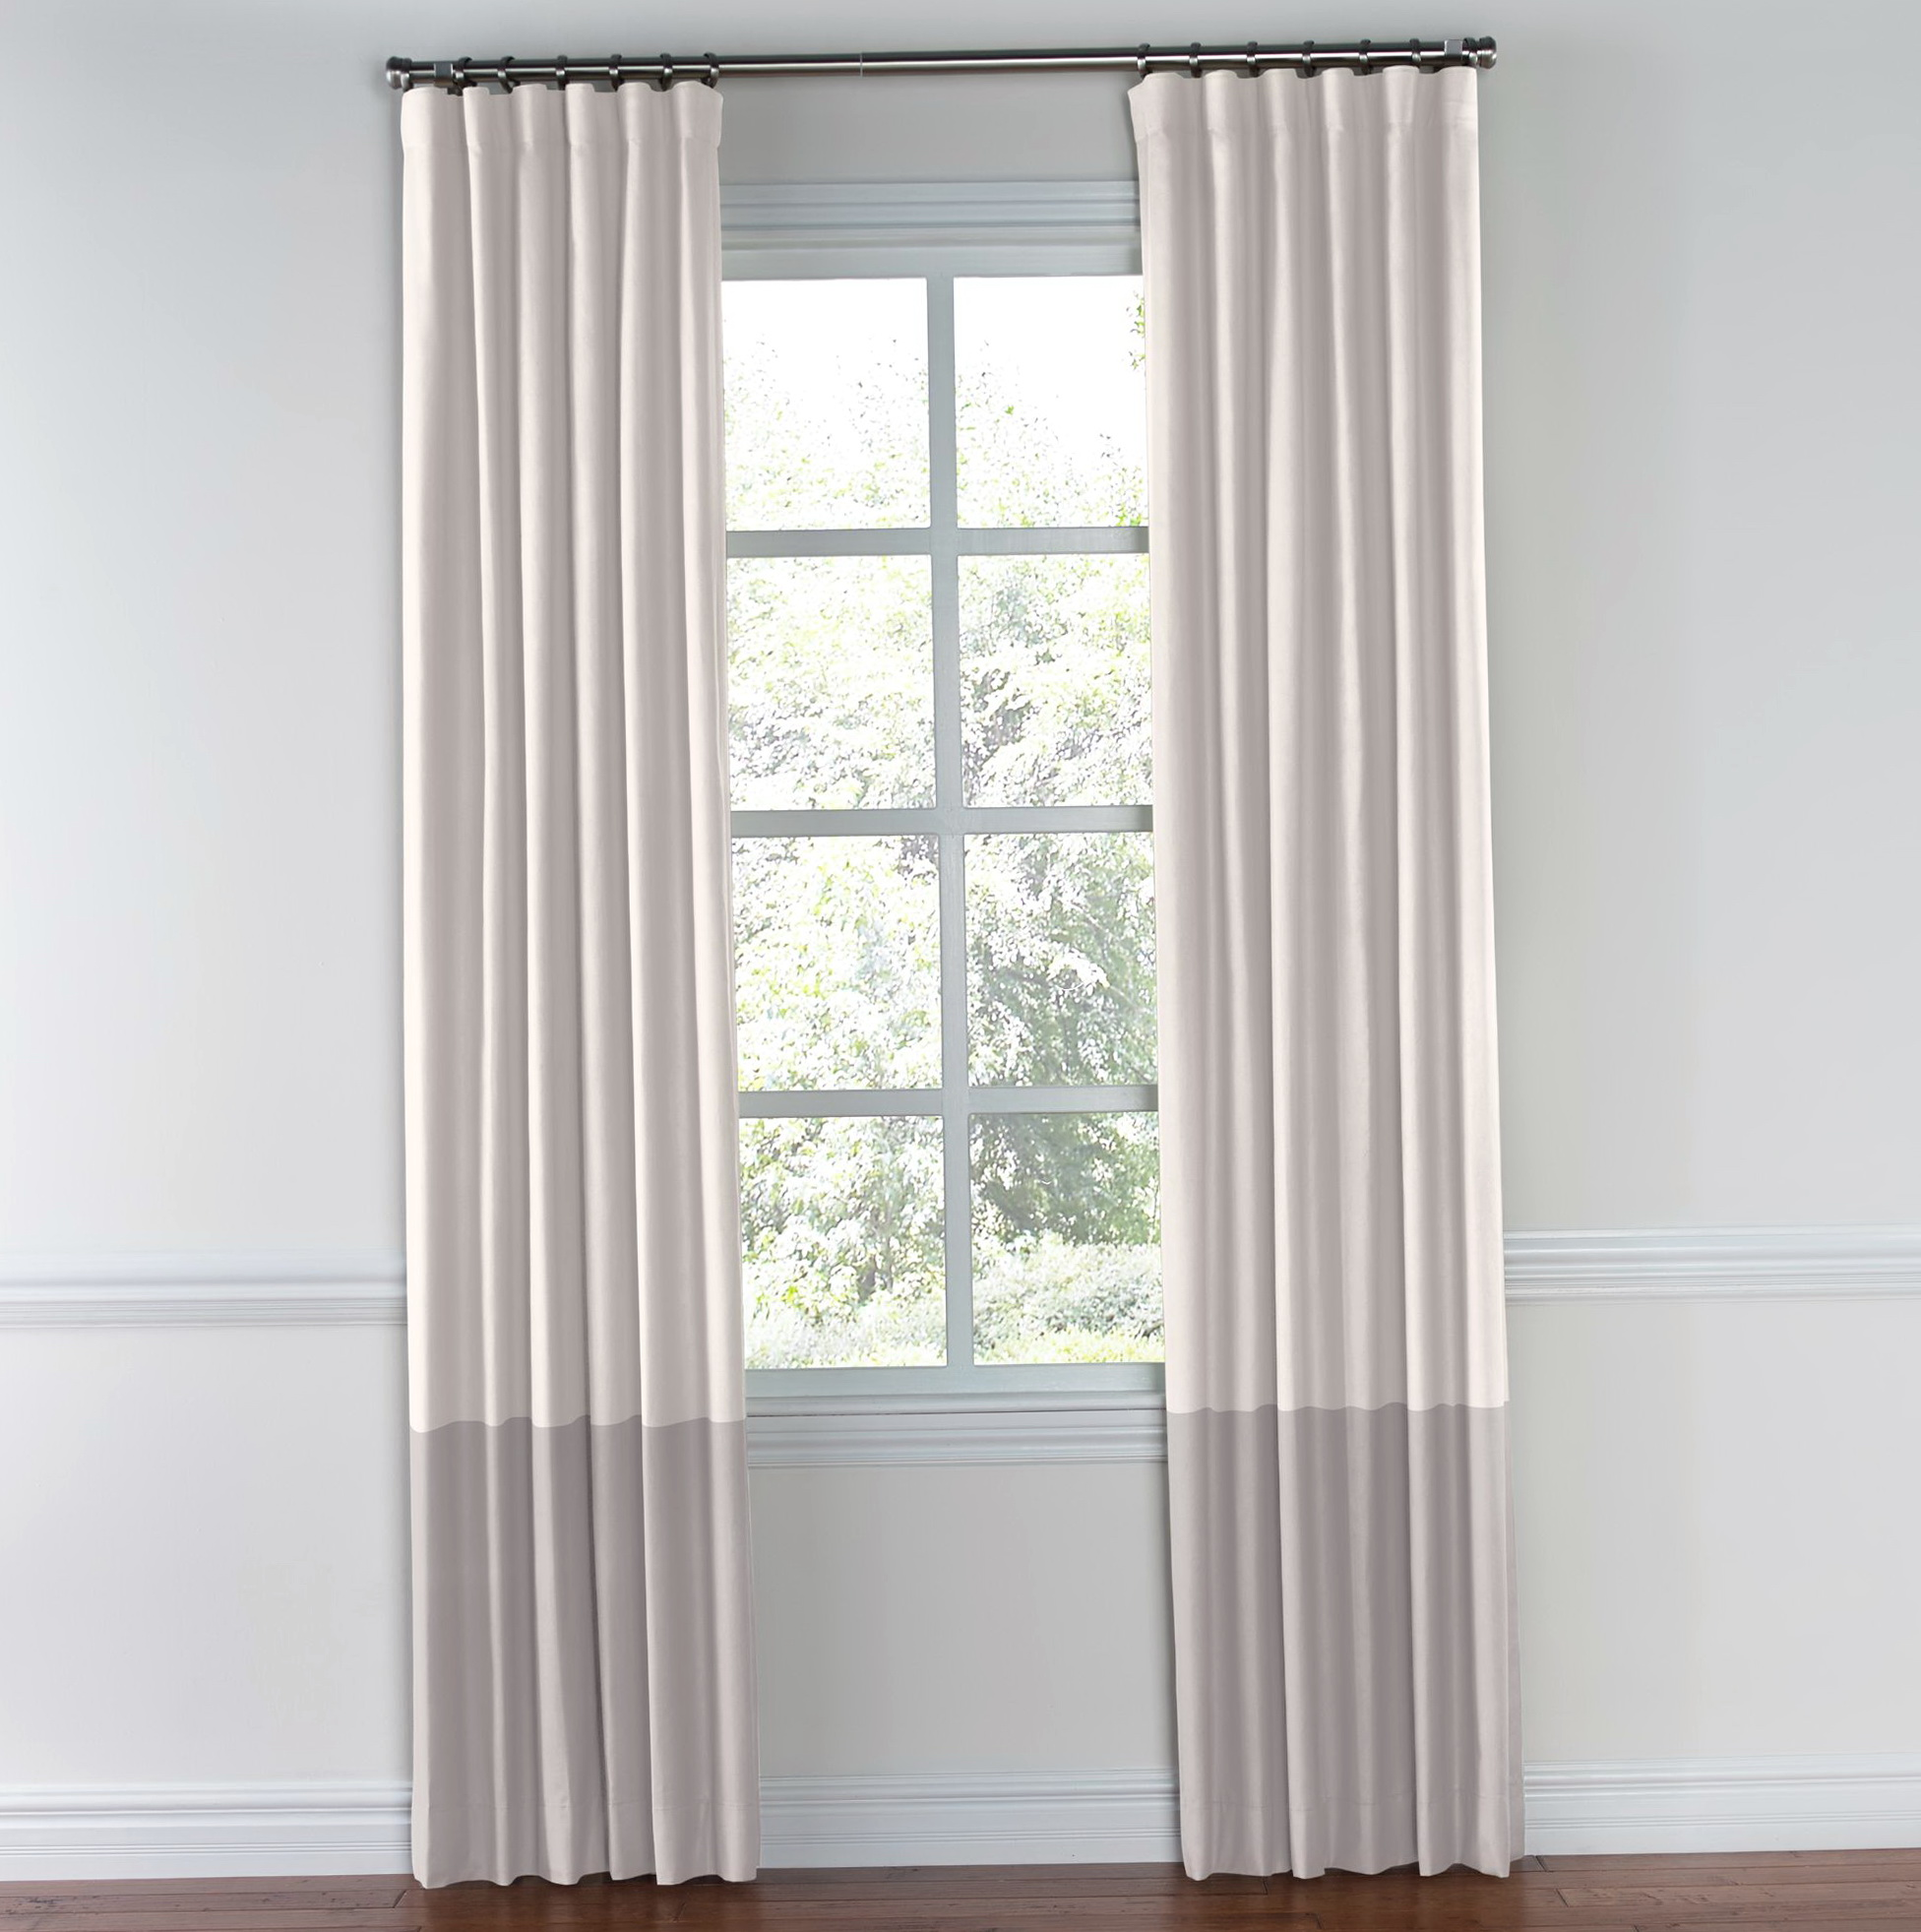 Color Block Curtains Drapes